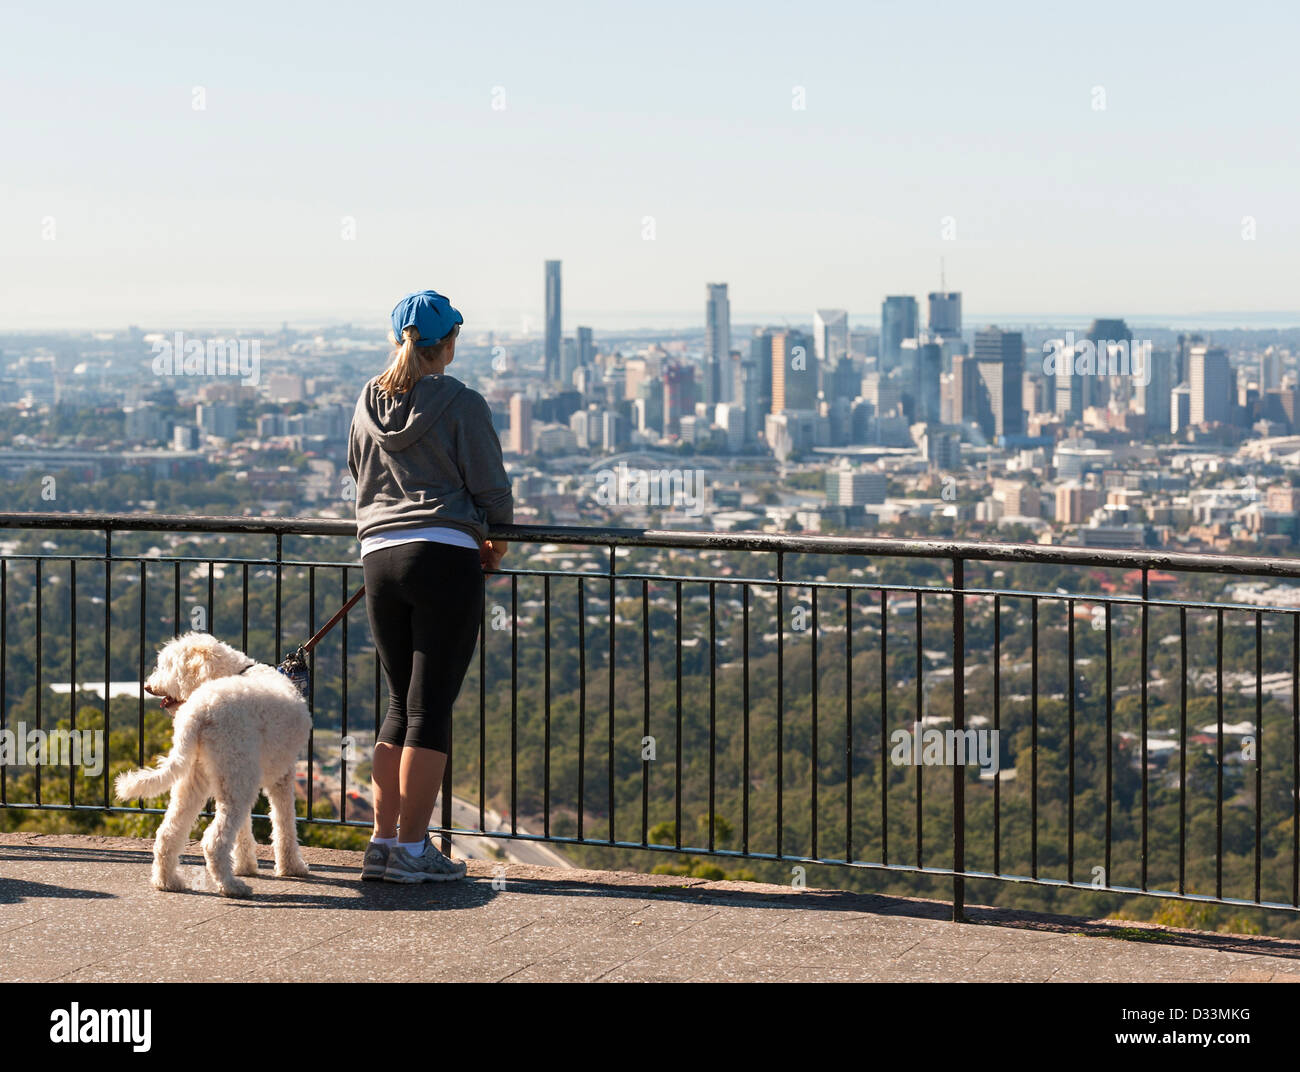 Brisbane city, Queensland, Australia - Woman with dog looking over from Mount Coot-Tha viewpoint - Stock Image